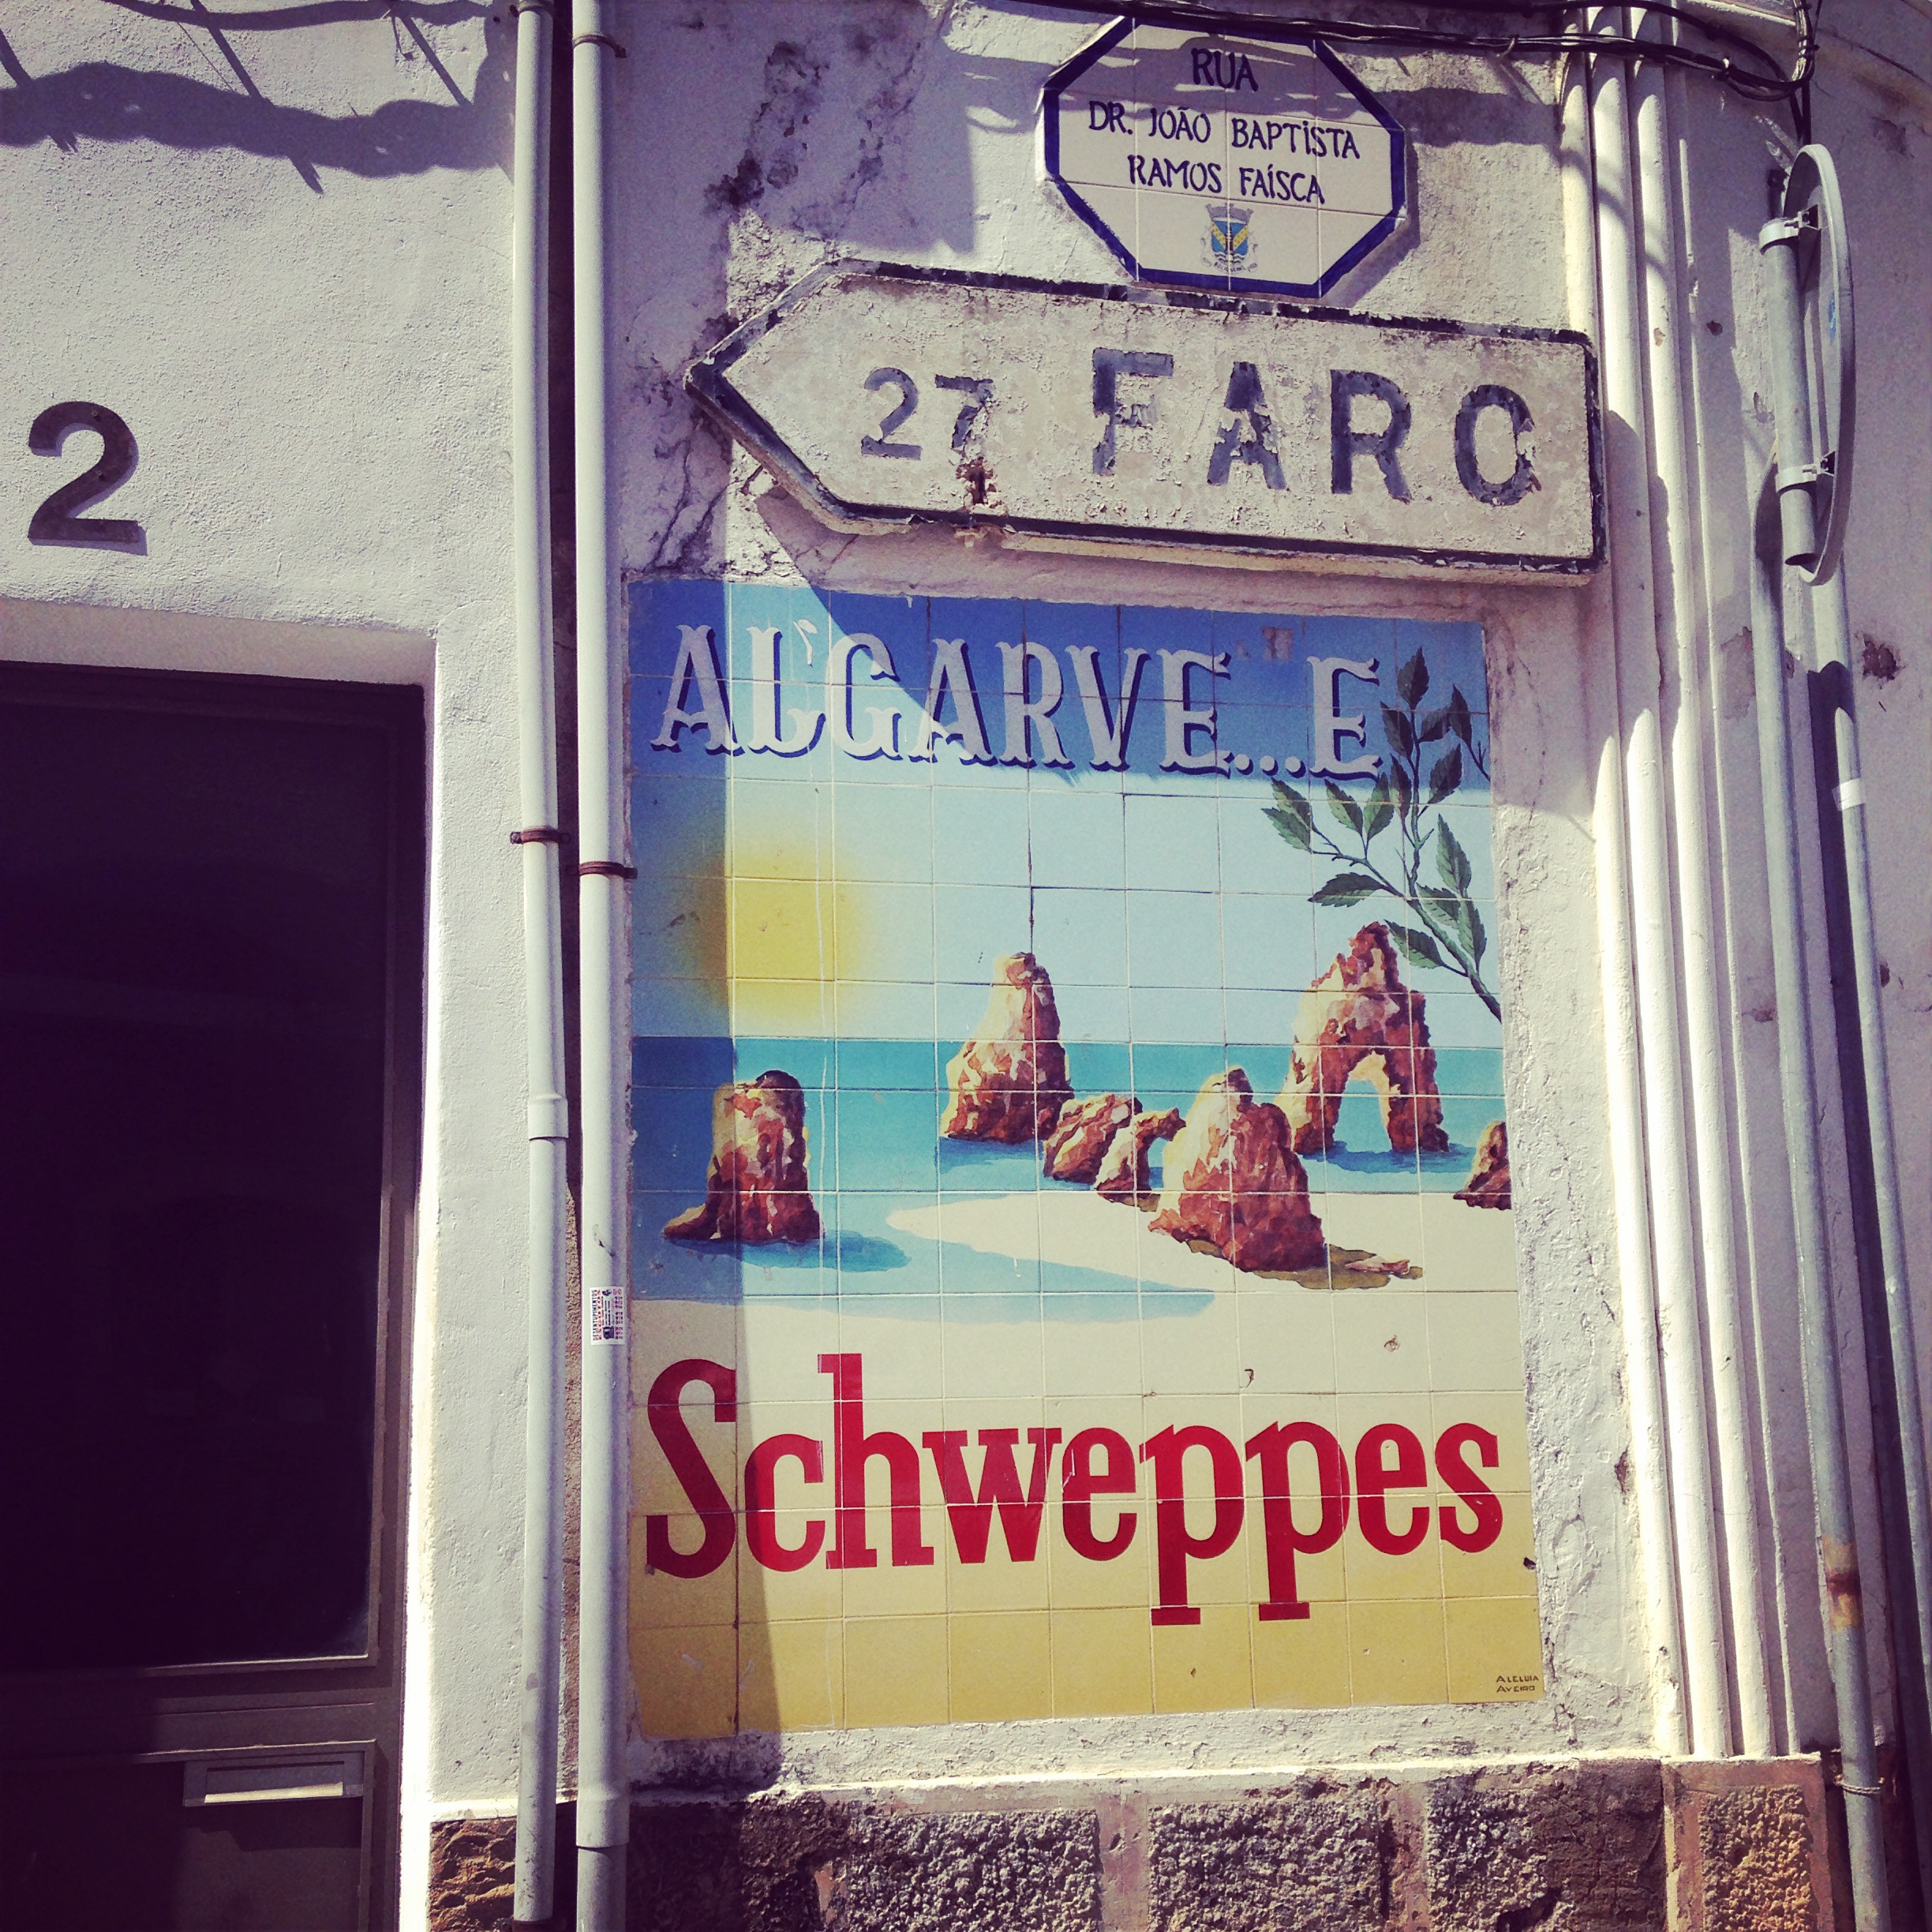 A vintage Schewppes ad in Algarve, Portugal. Photo: Marine Raynard